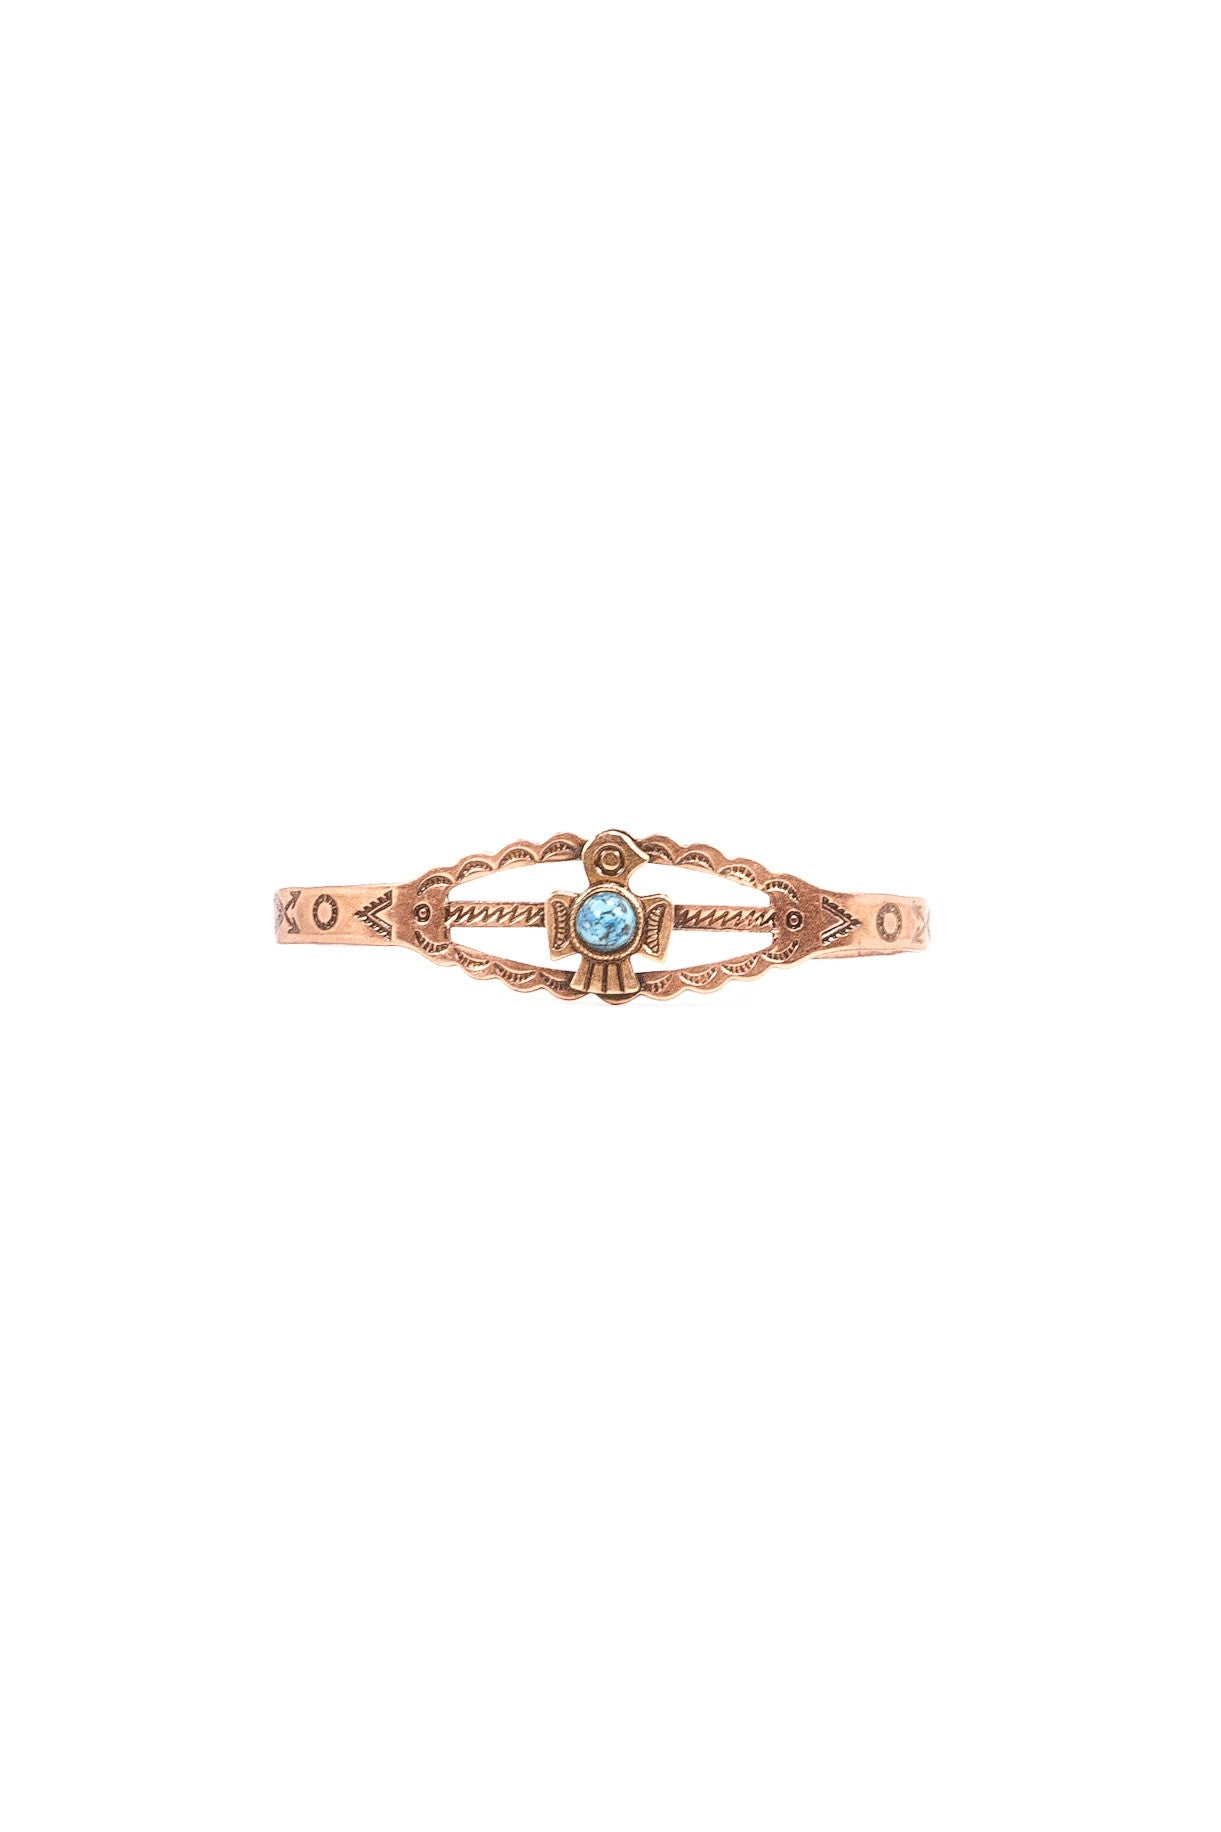 70's__Vintage__Dainty Copper & Turquoise Cuff